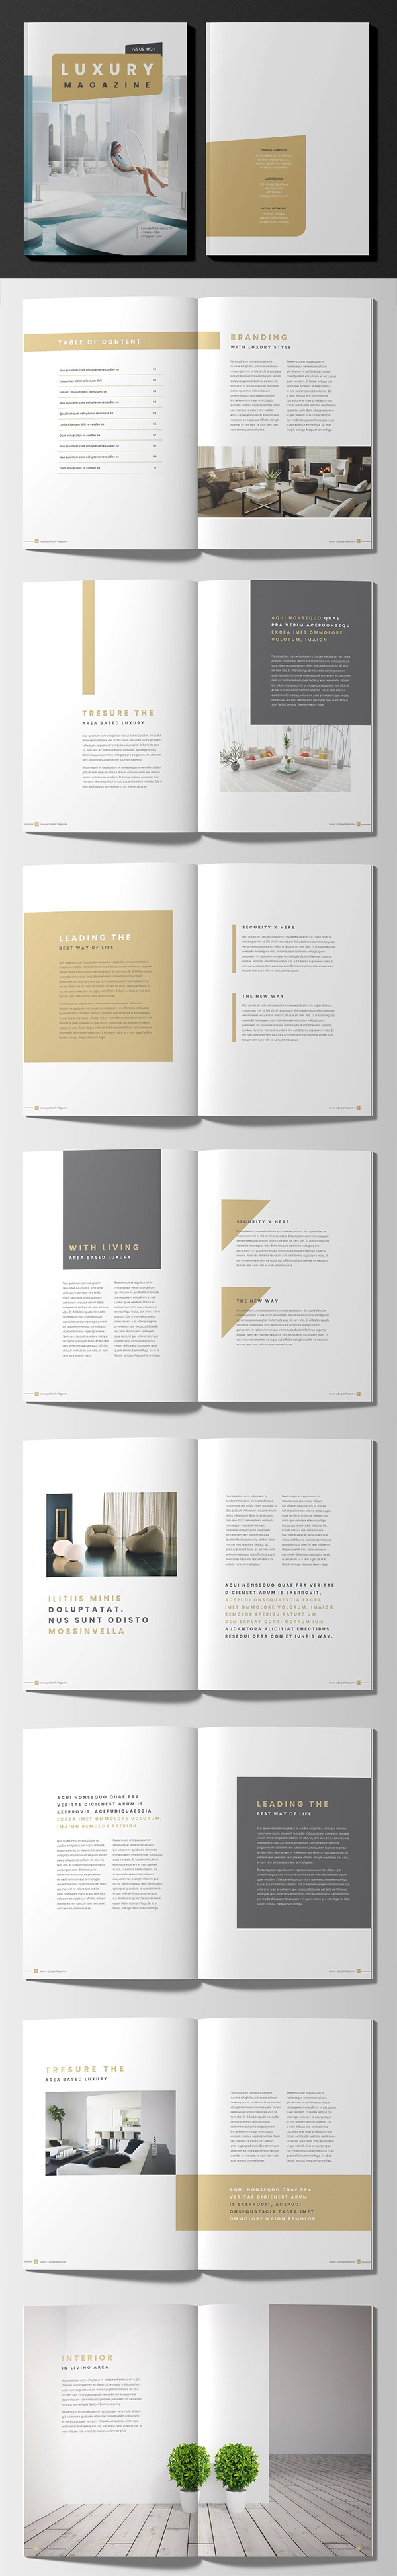 Luxury Lifestyle Magazine Brochure Template